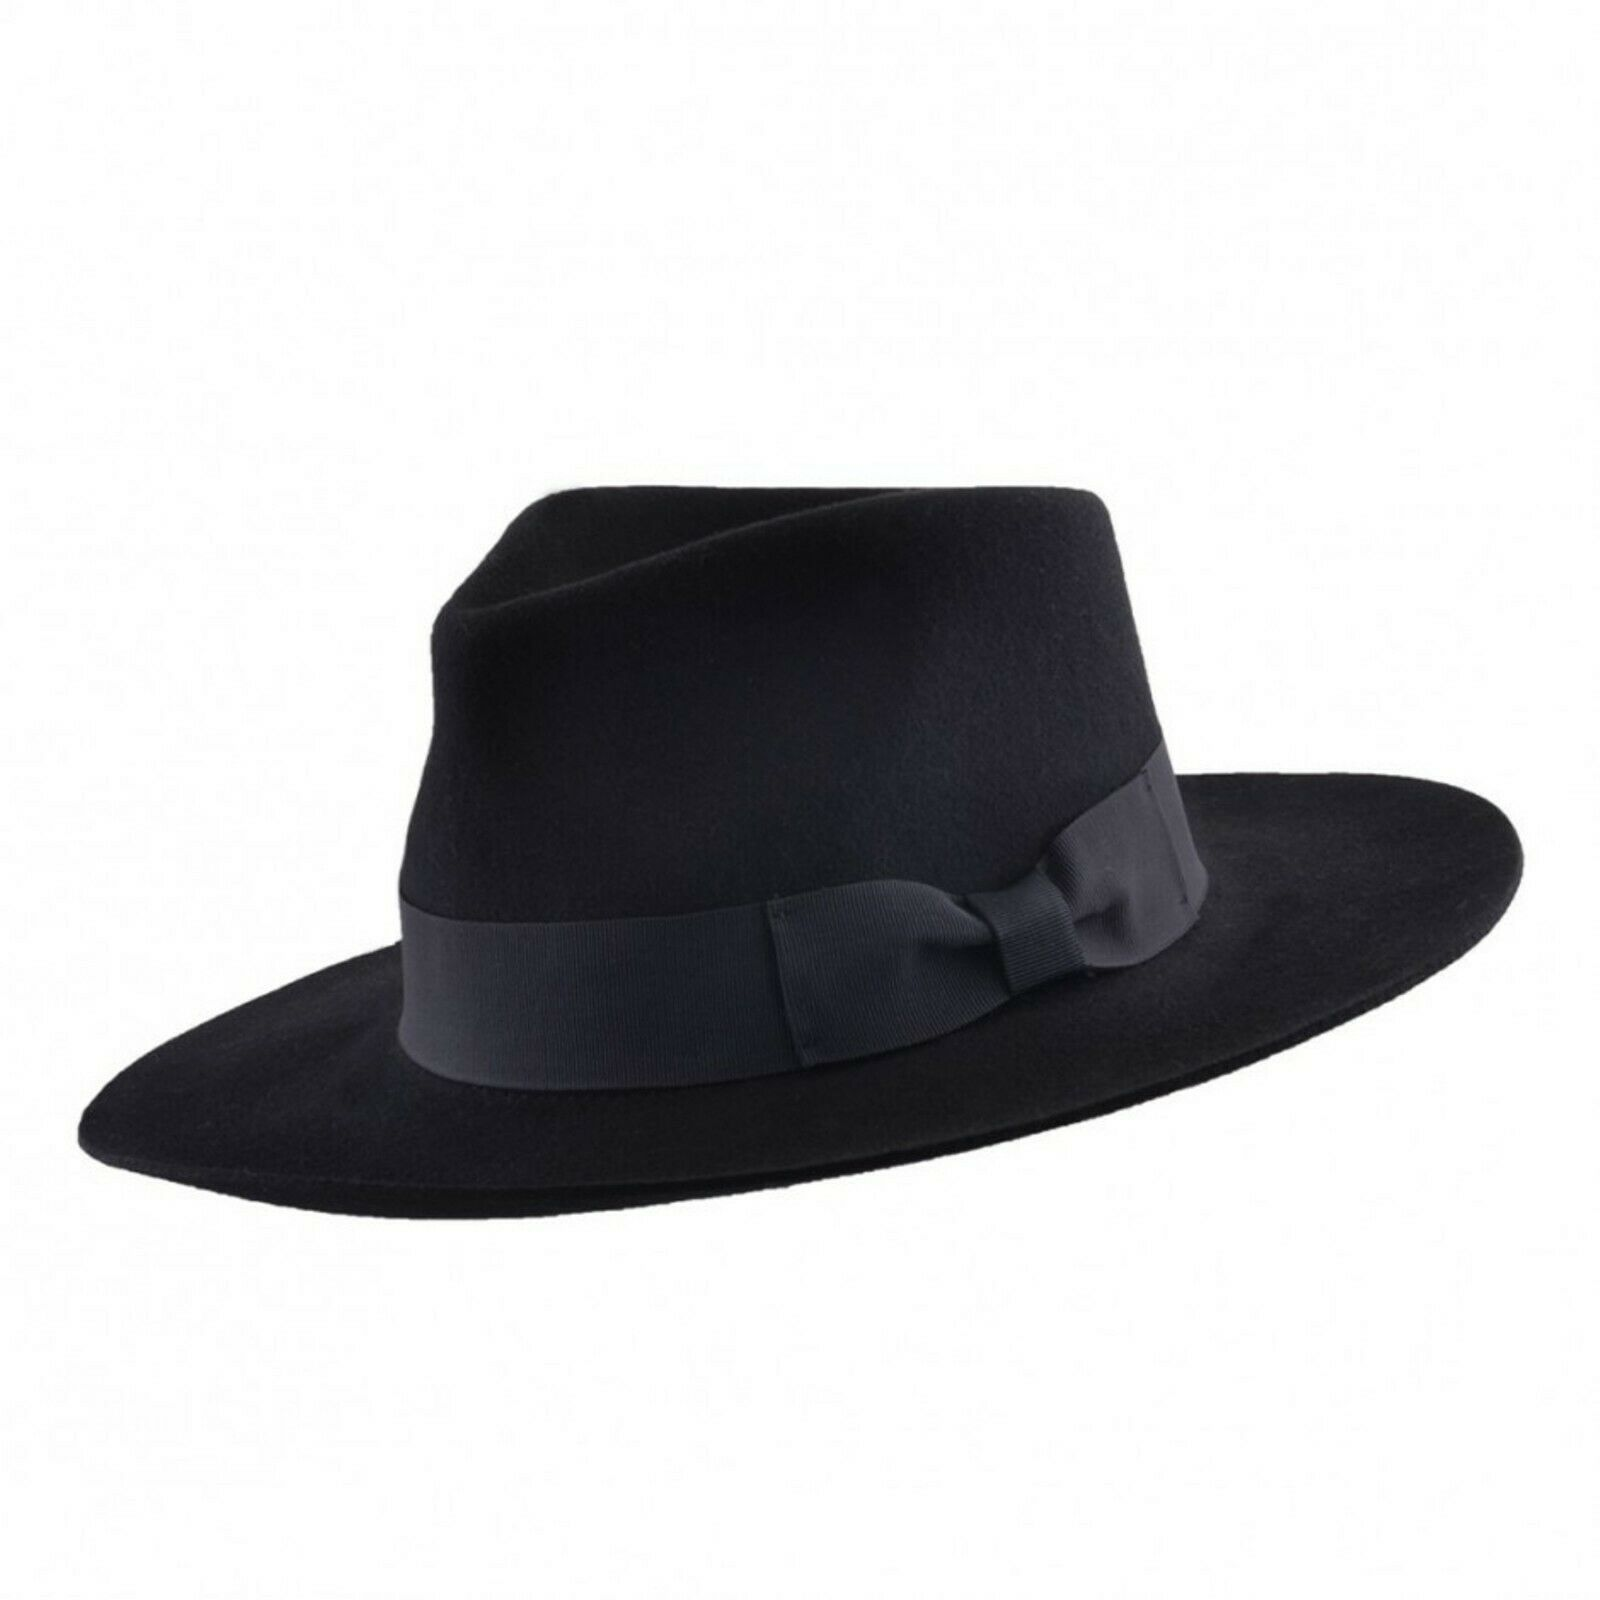 dfca320b1bf46 Gents 100% Wool Black Stiff and Snap Brim Felt Fedora Trilby Hat With Wide  Band